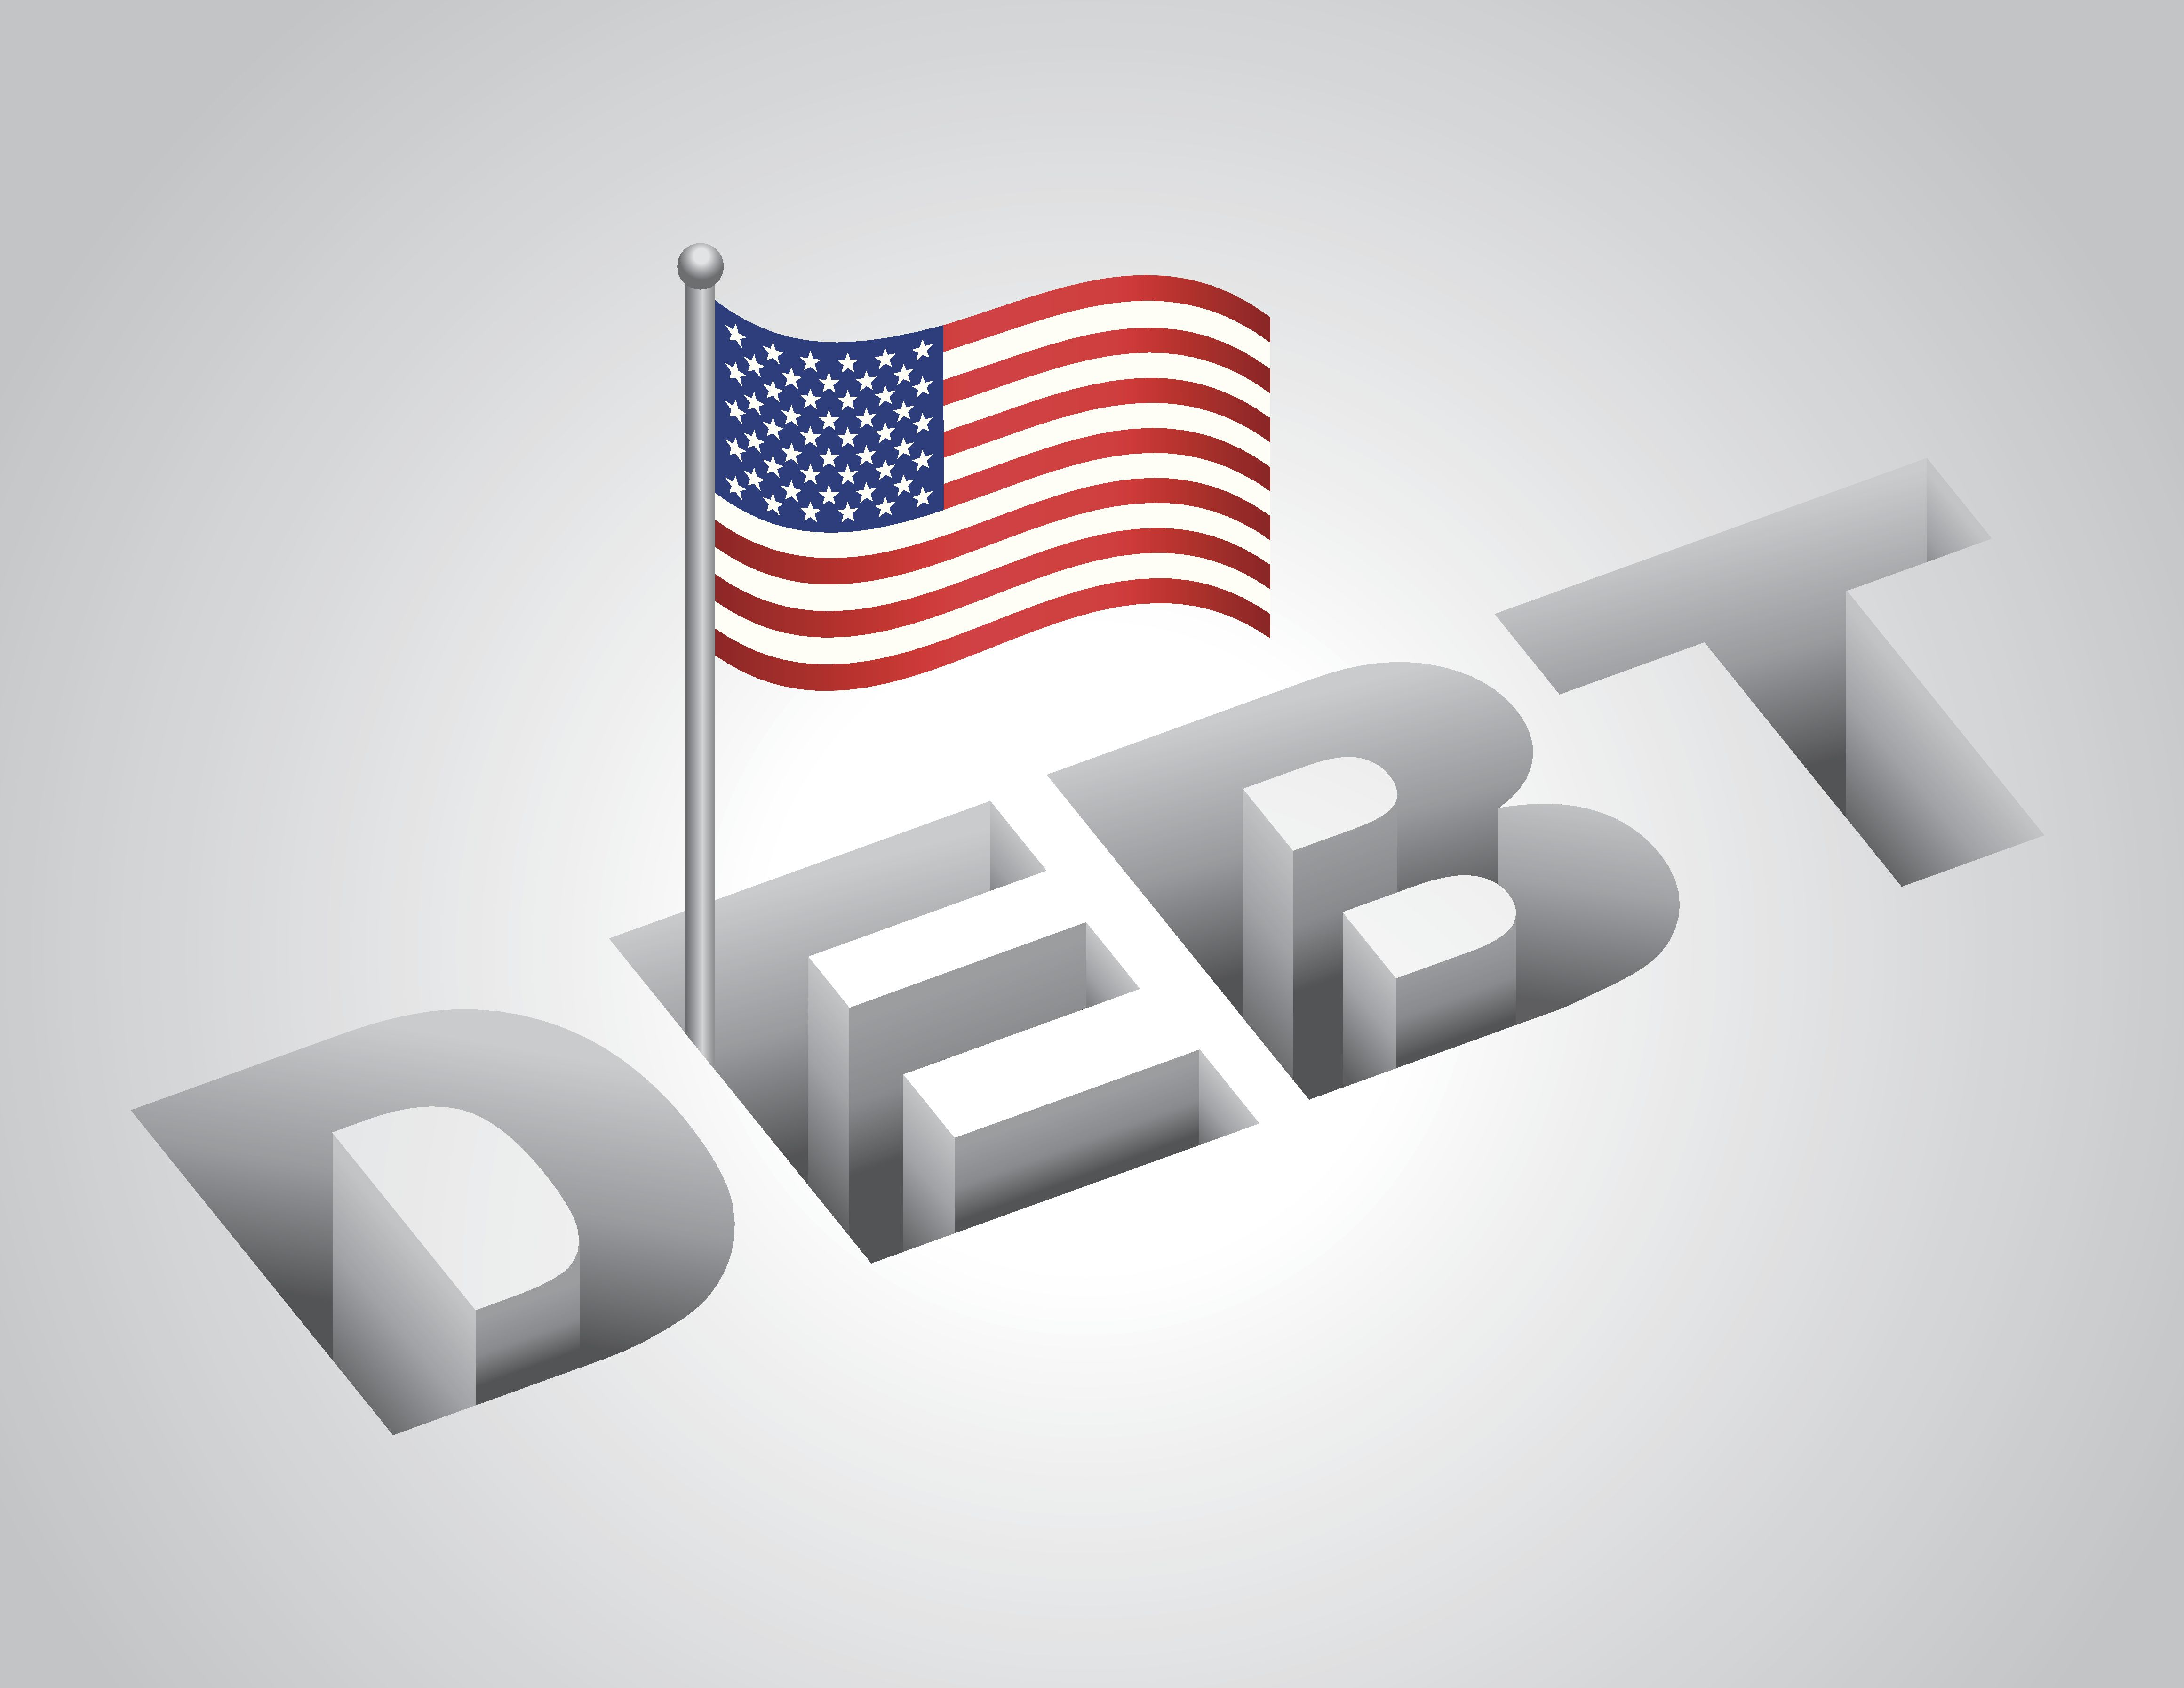 U.S. Debt Crisis: Summary, Timeline and Solutions